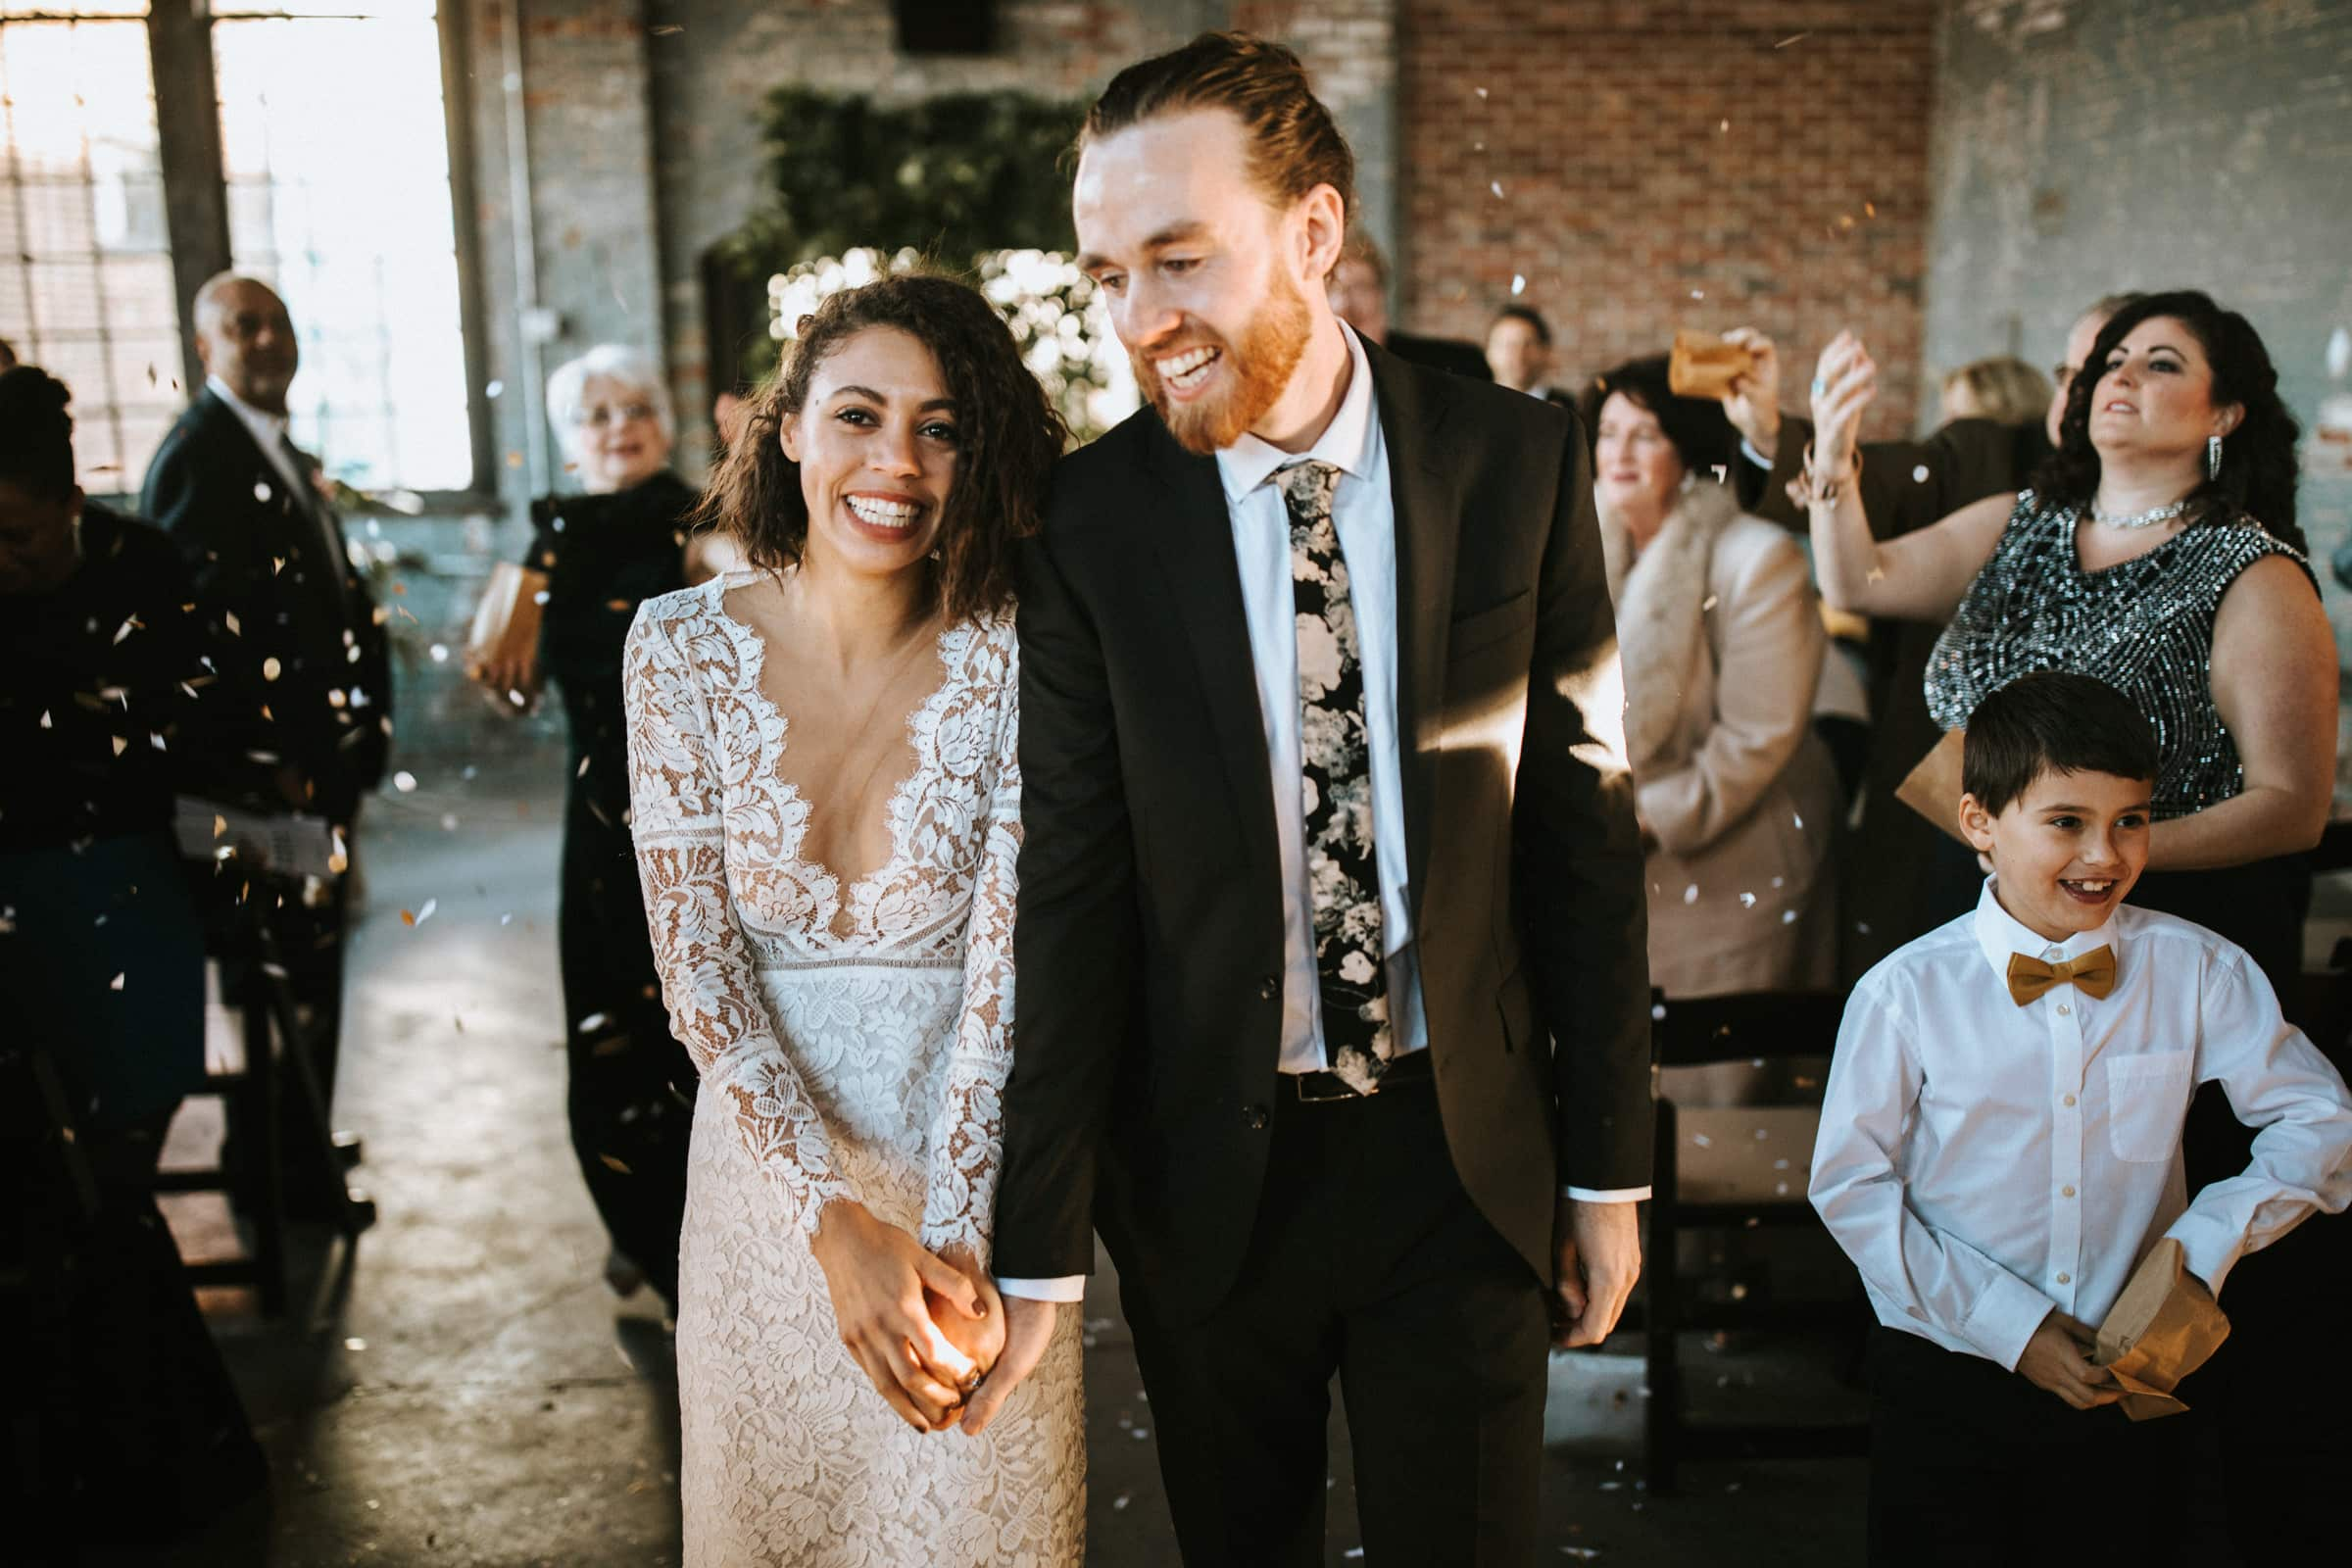 A wedding couple is holding hands and walking back the aisle.